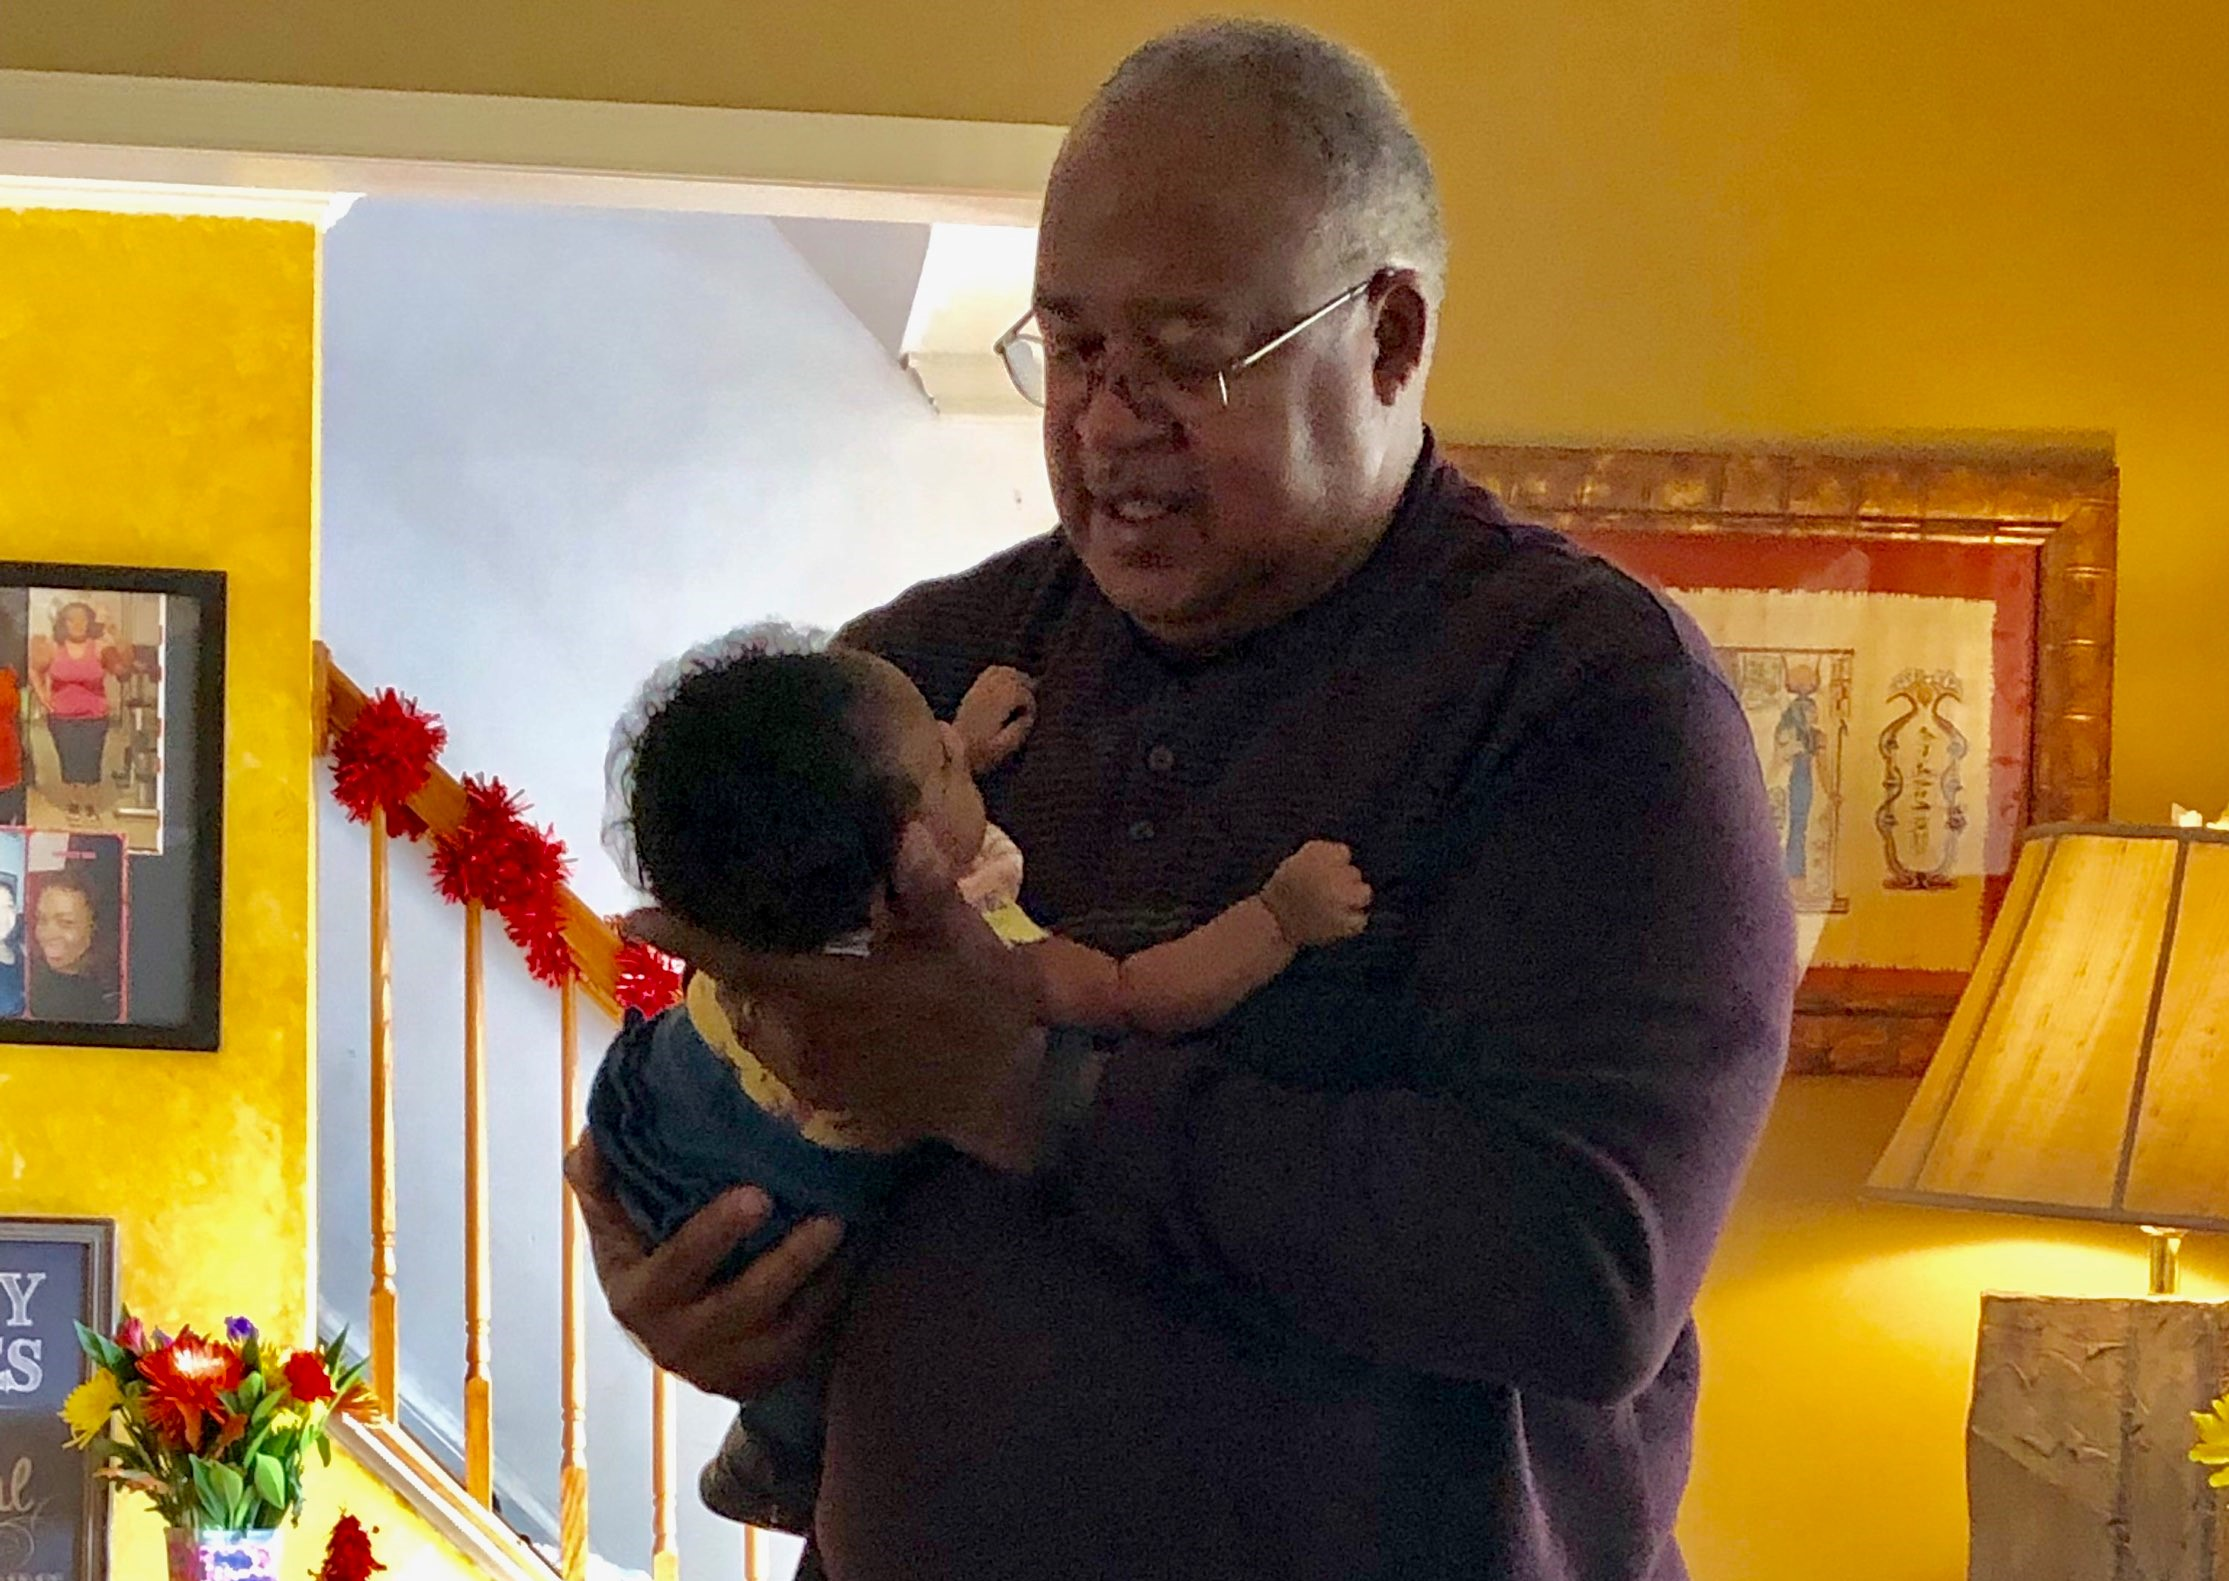 African American grandfather cradling granddaughter